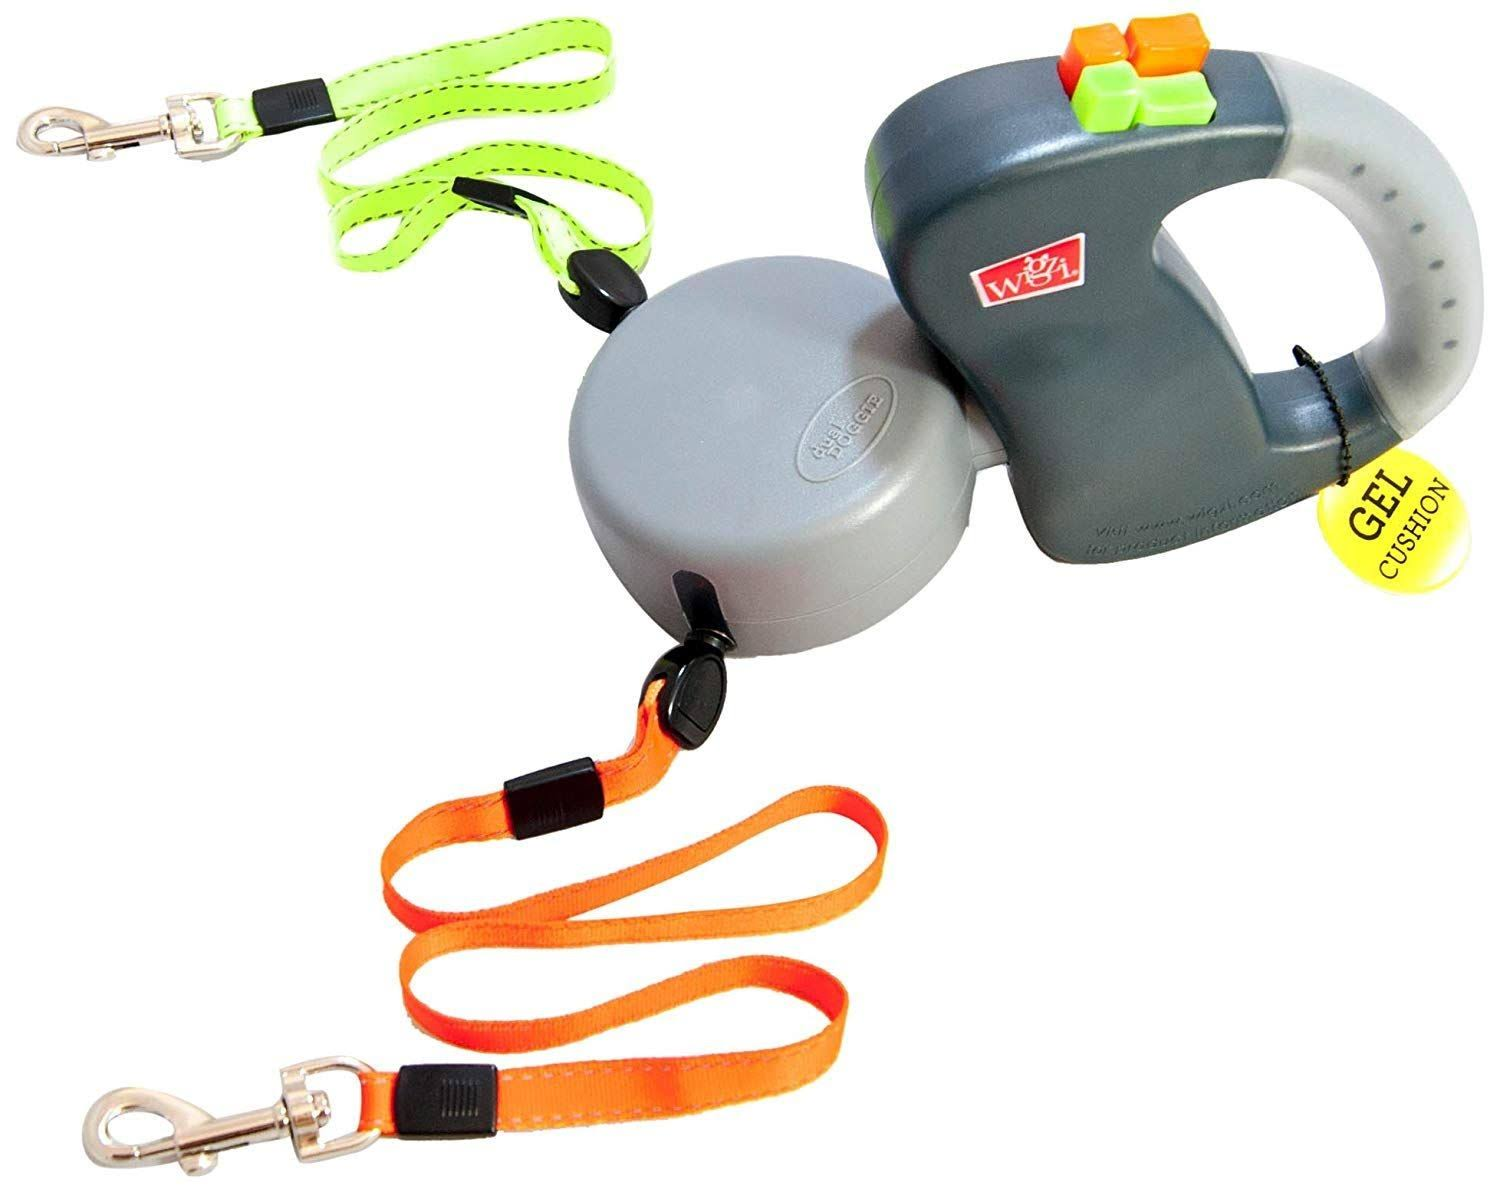 Wigzi 2 Dog Retractable Non-tangling Dog Leash - Innovative Gel Handle